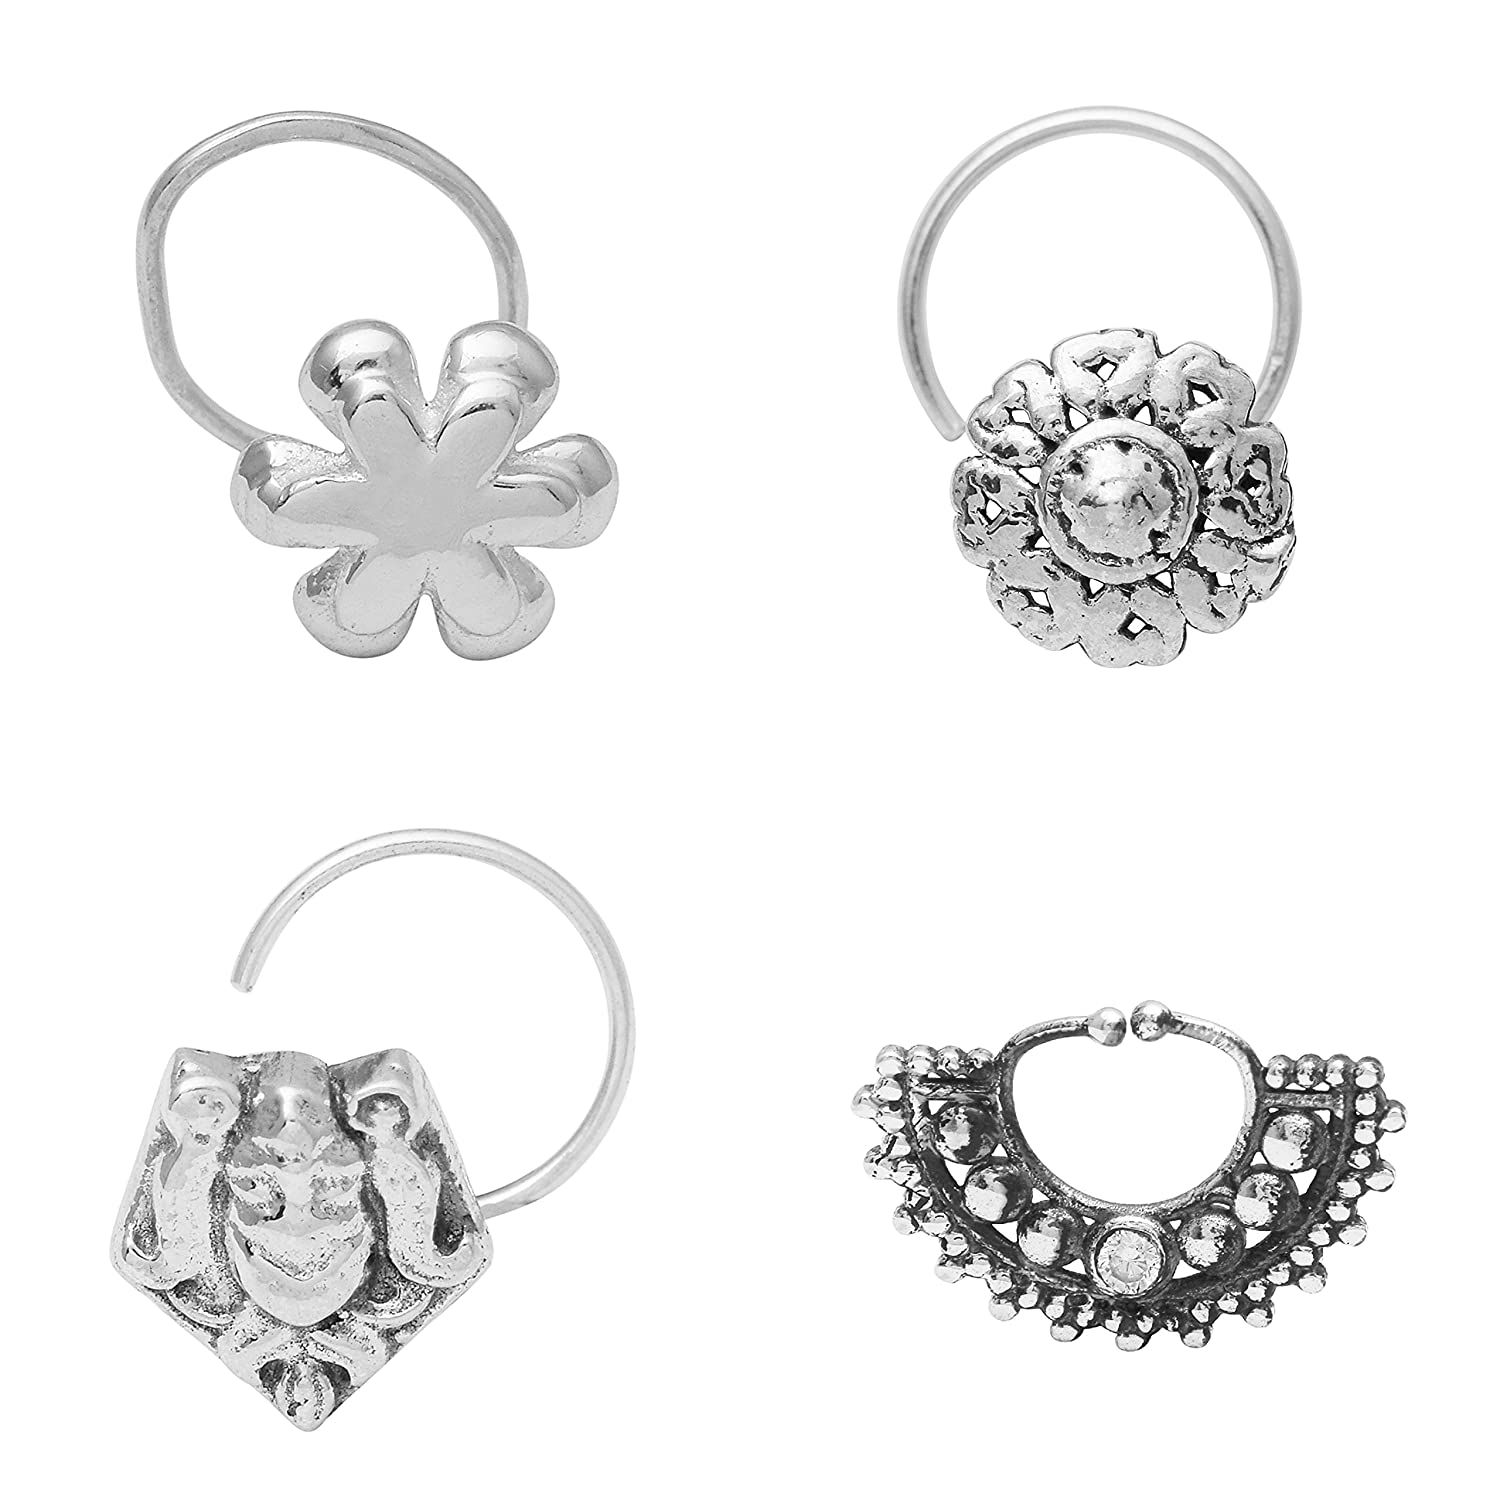 Buy Shine Jewel 925 Oxidized Sterling Silver Cubic Zirconia Nose